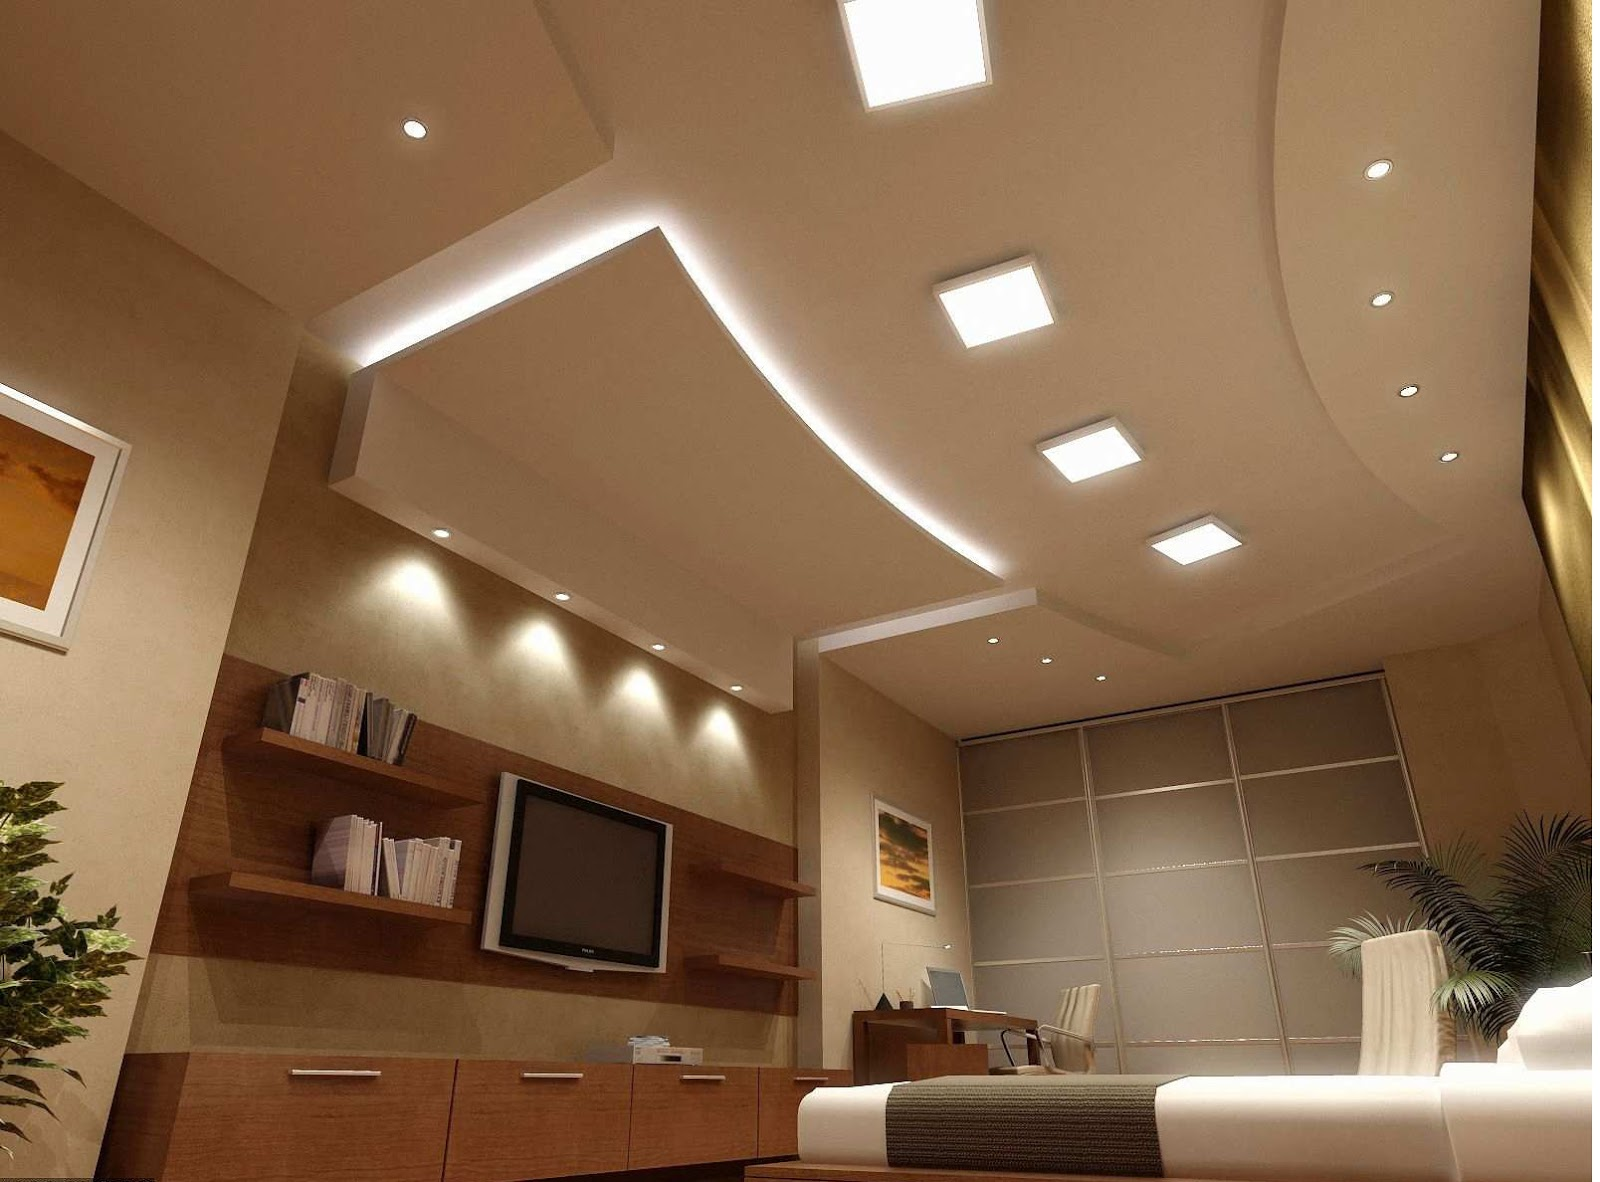 The Led Fitted Pop False Ceiling For Bedroom Looks Really Modern And Hence The Modern Bedroom Interior Looks Quite Beautiful